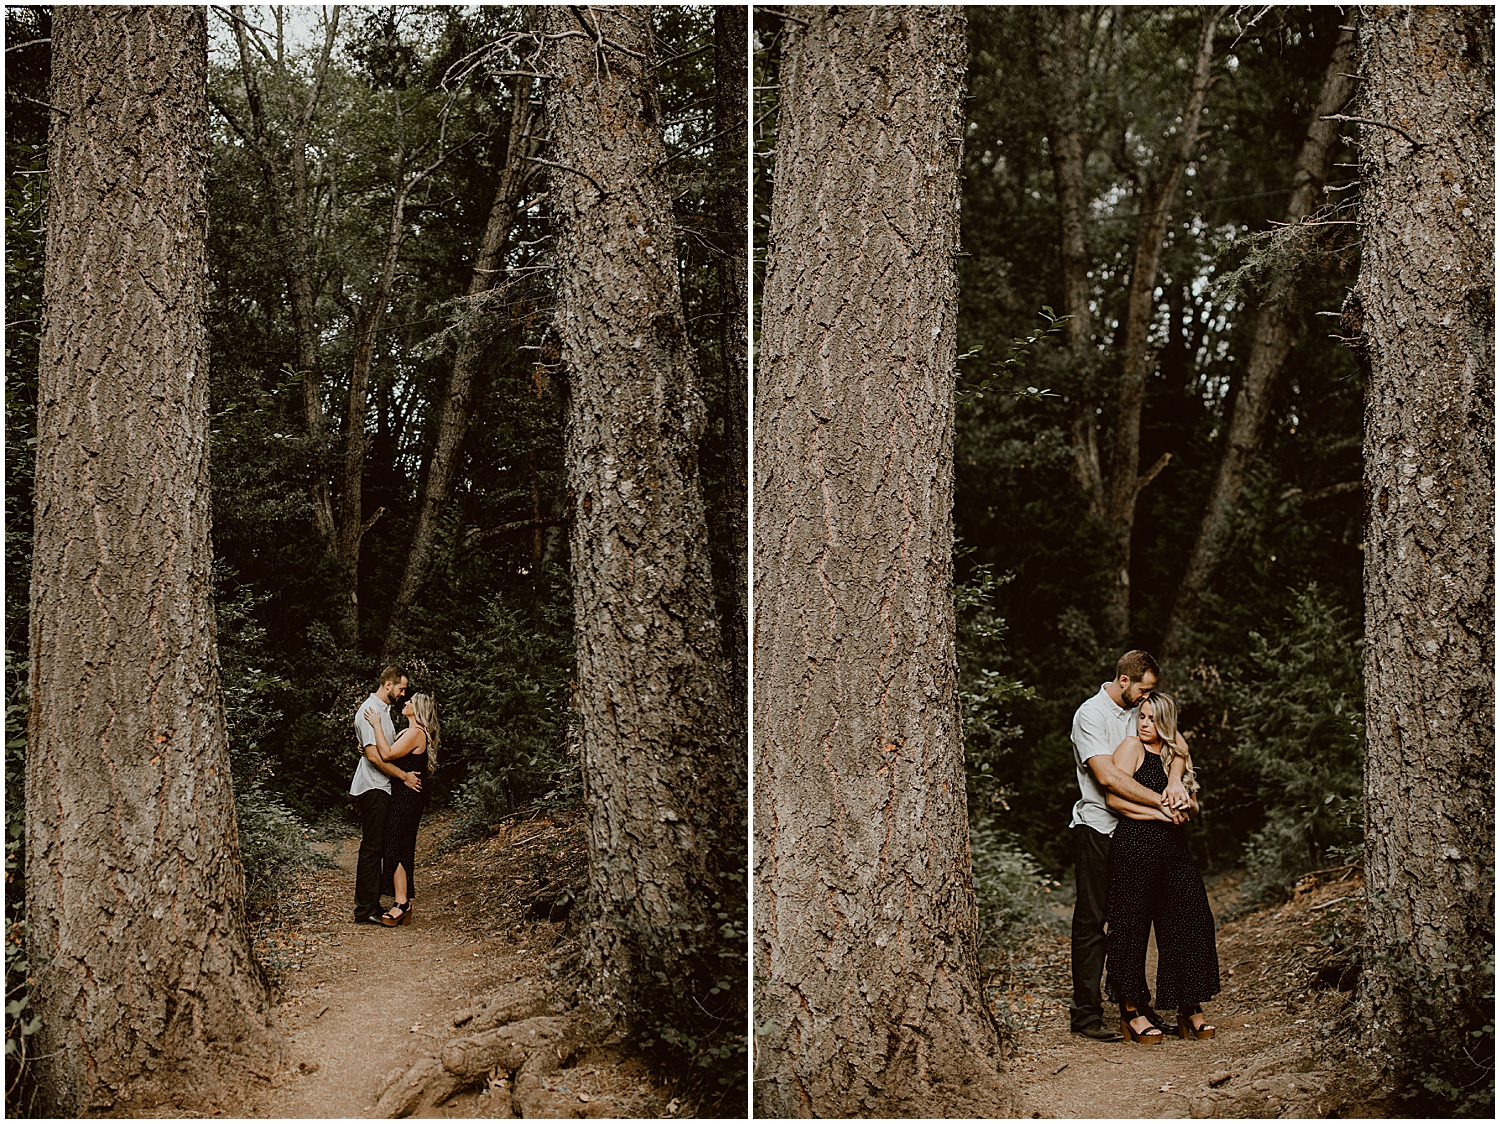 Palomar-Mountain-Engagement-D+M-Diana-Lake-Photography-118.jpg